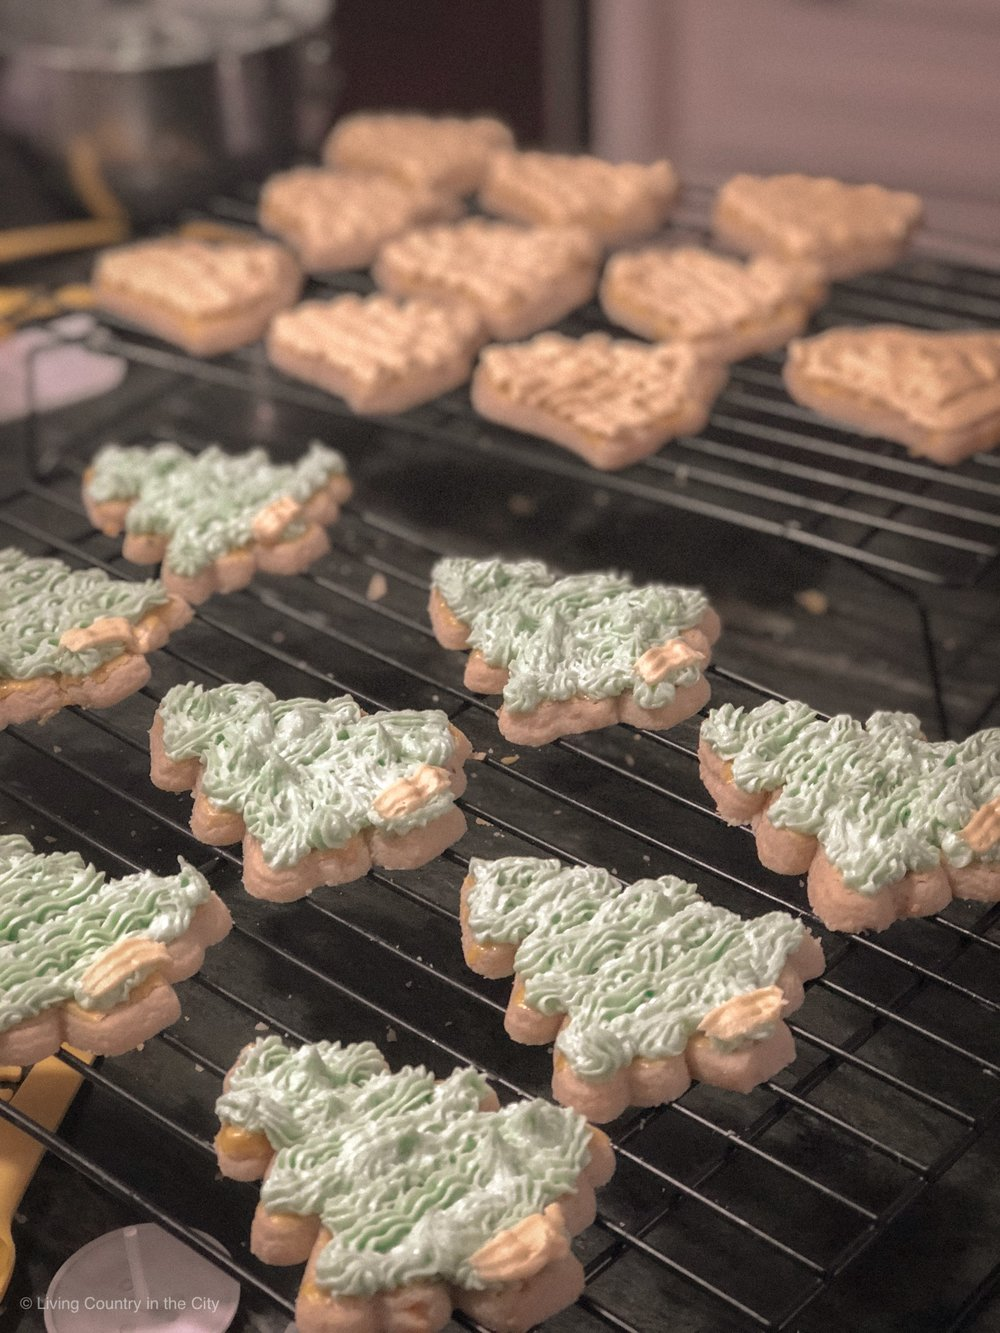 lc_blog_christmascookies_012_v1.JPG